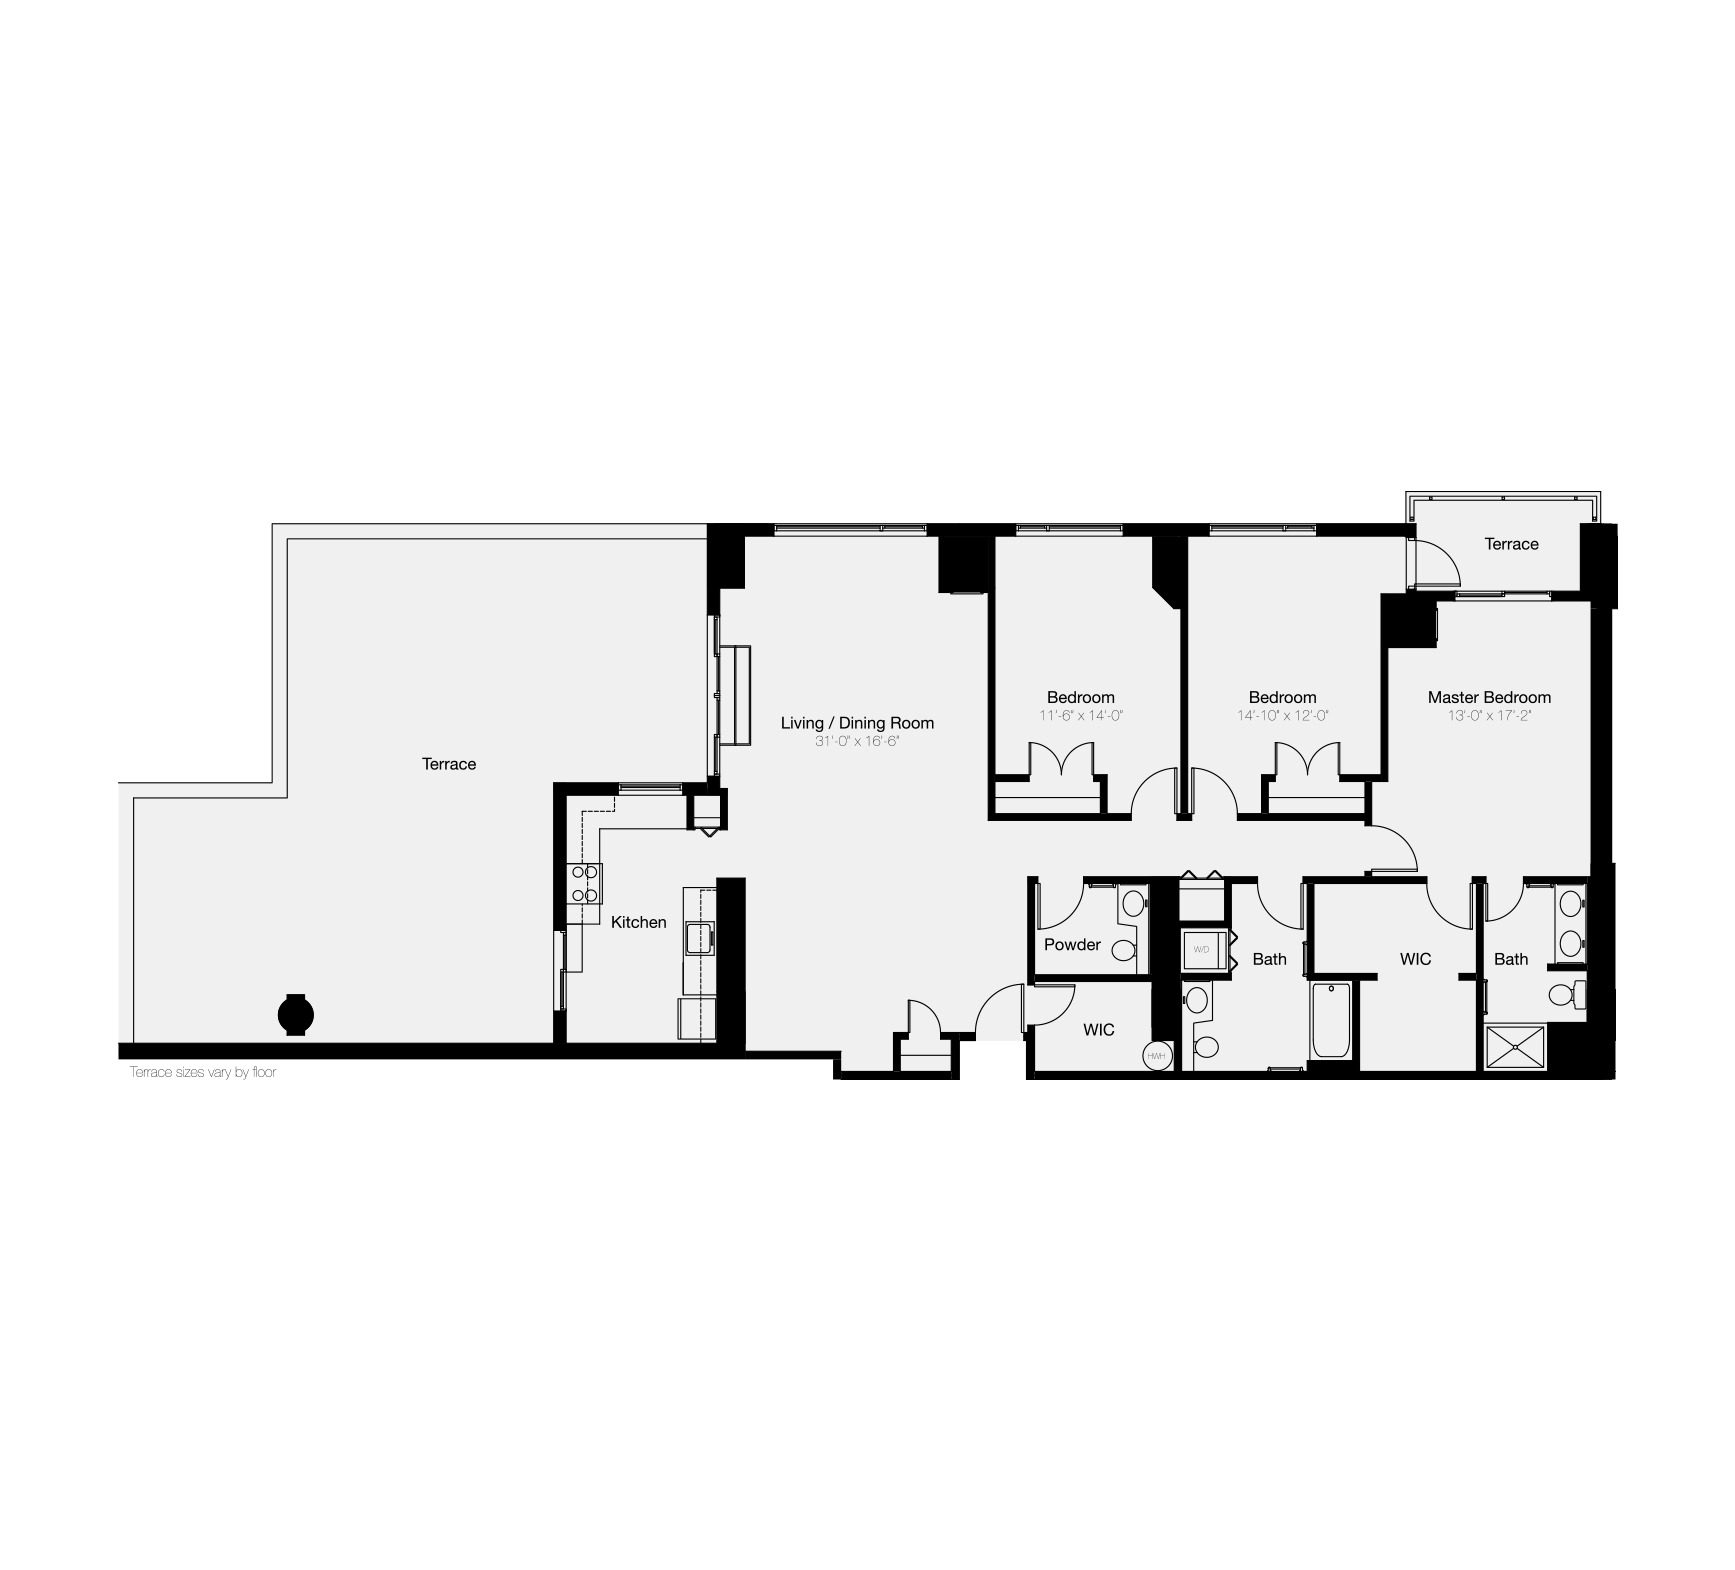 The Residences of Dockside three-bedroom floor plan